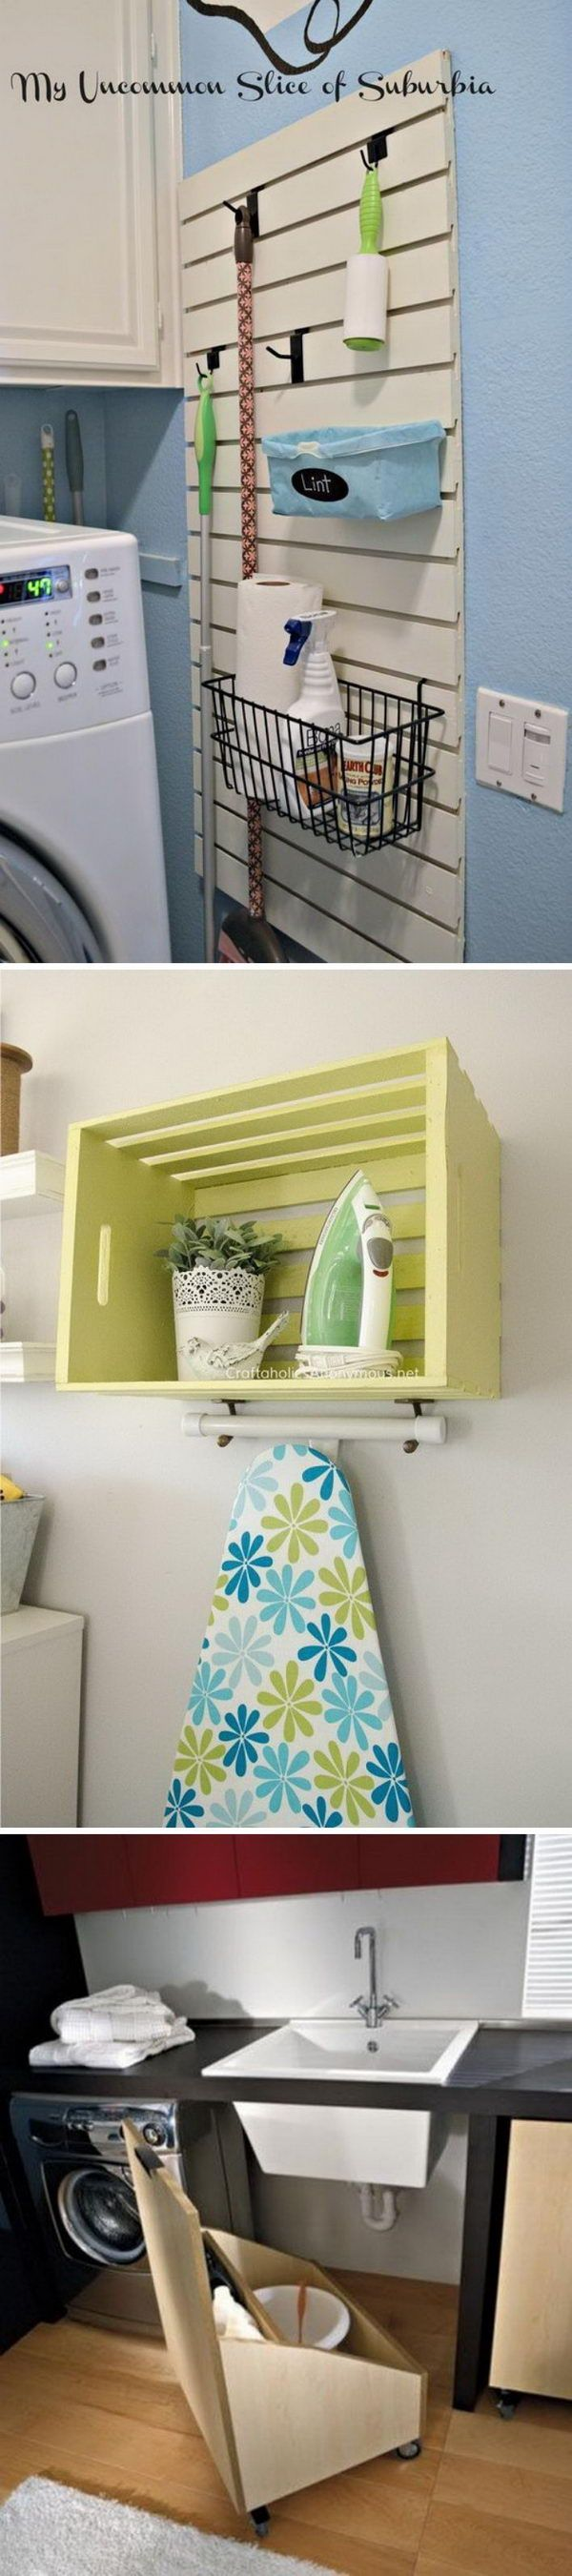 Clever Laundry Room Organization and Storage Ideas.